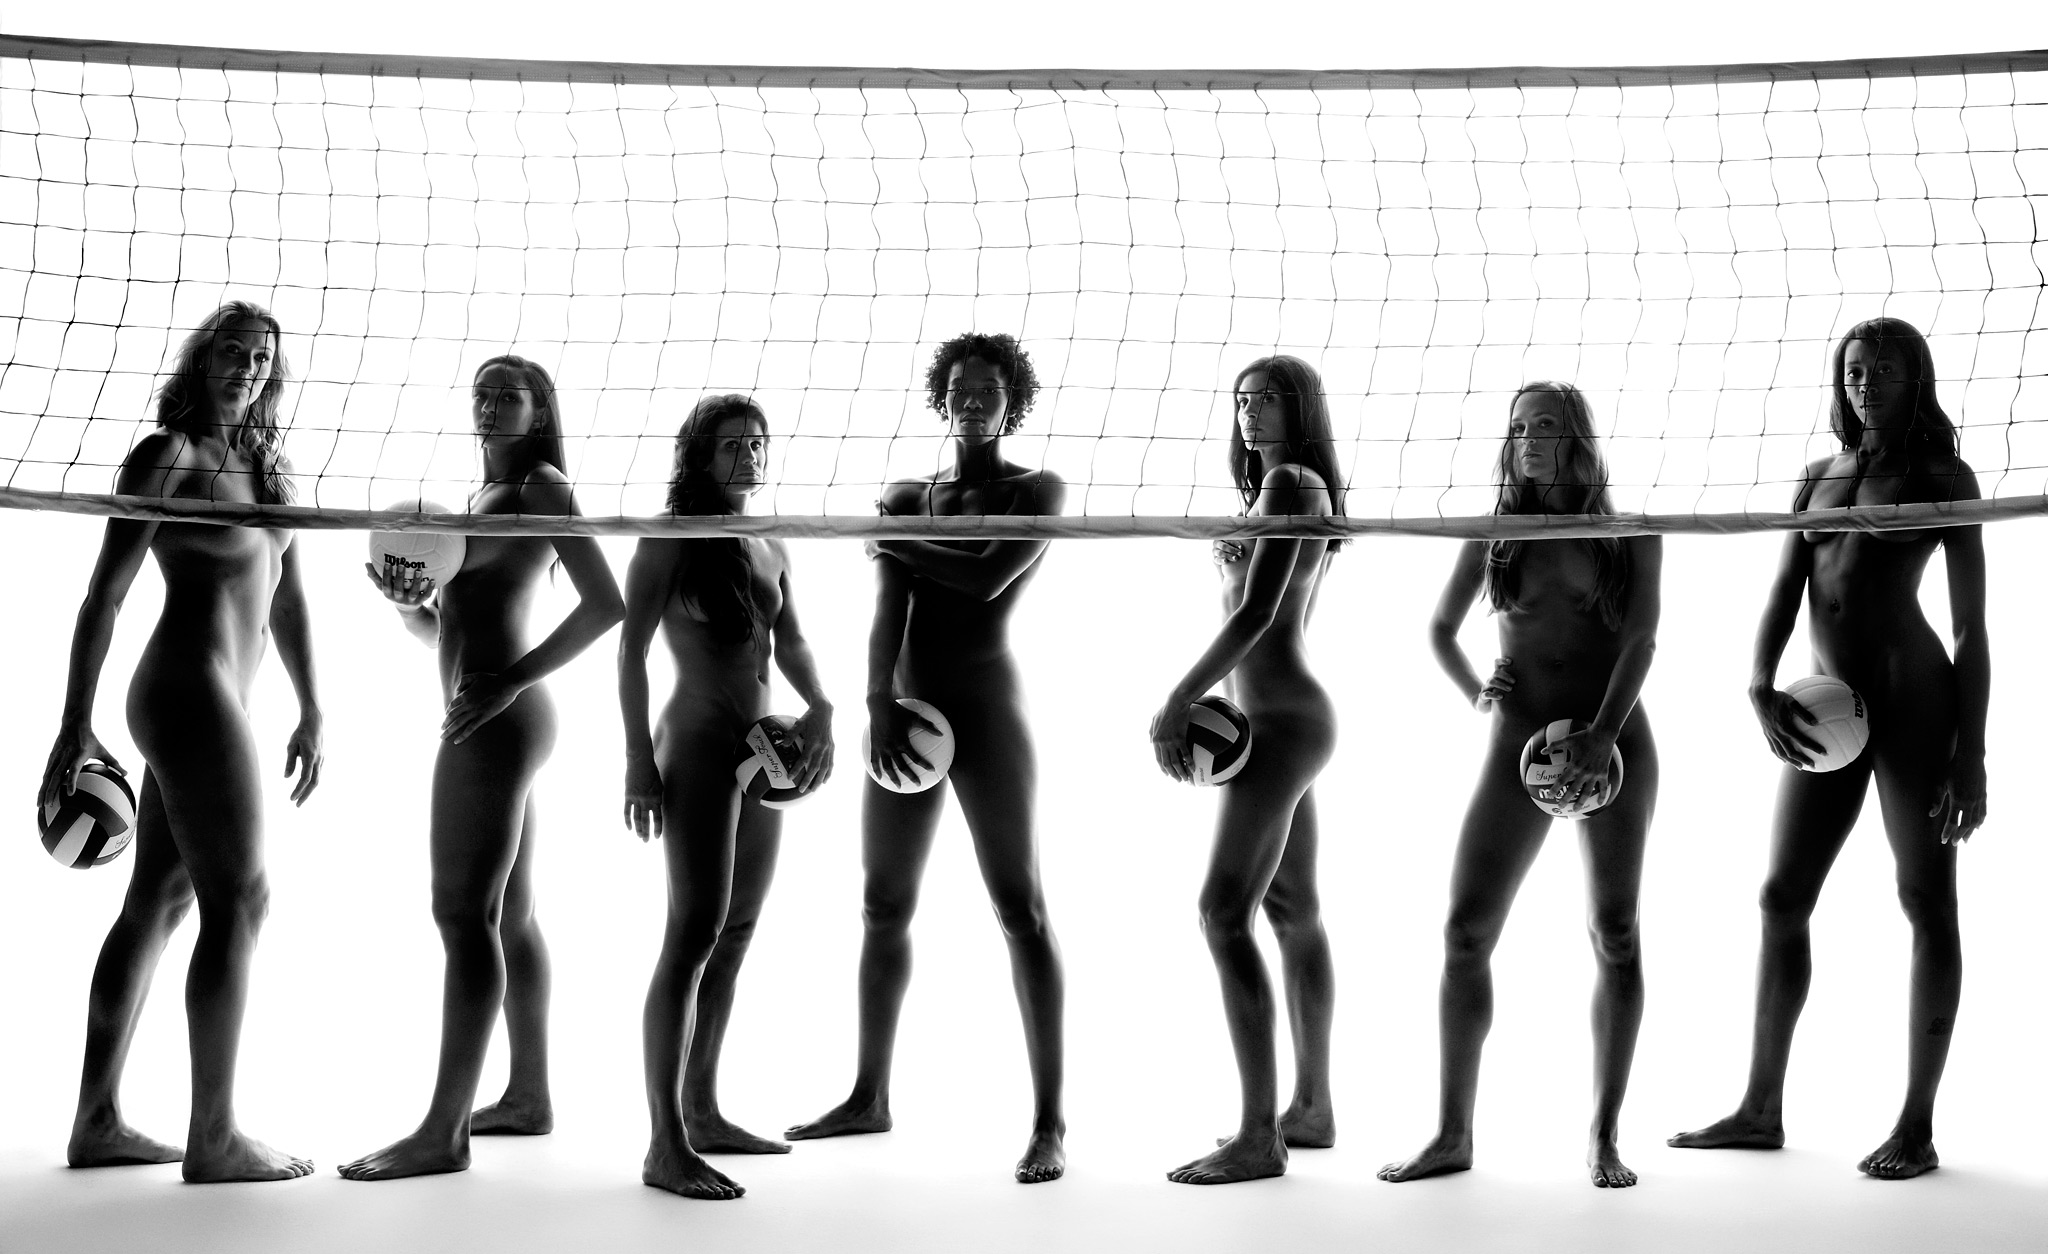 U.S. Women's National Volleyball Team